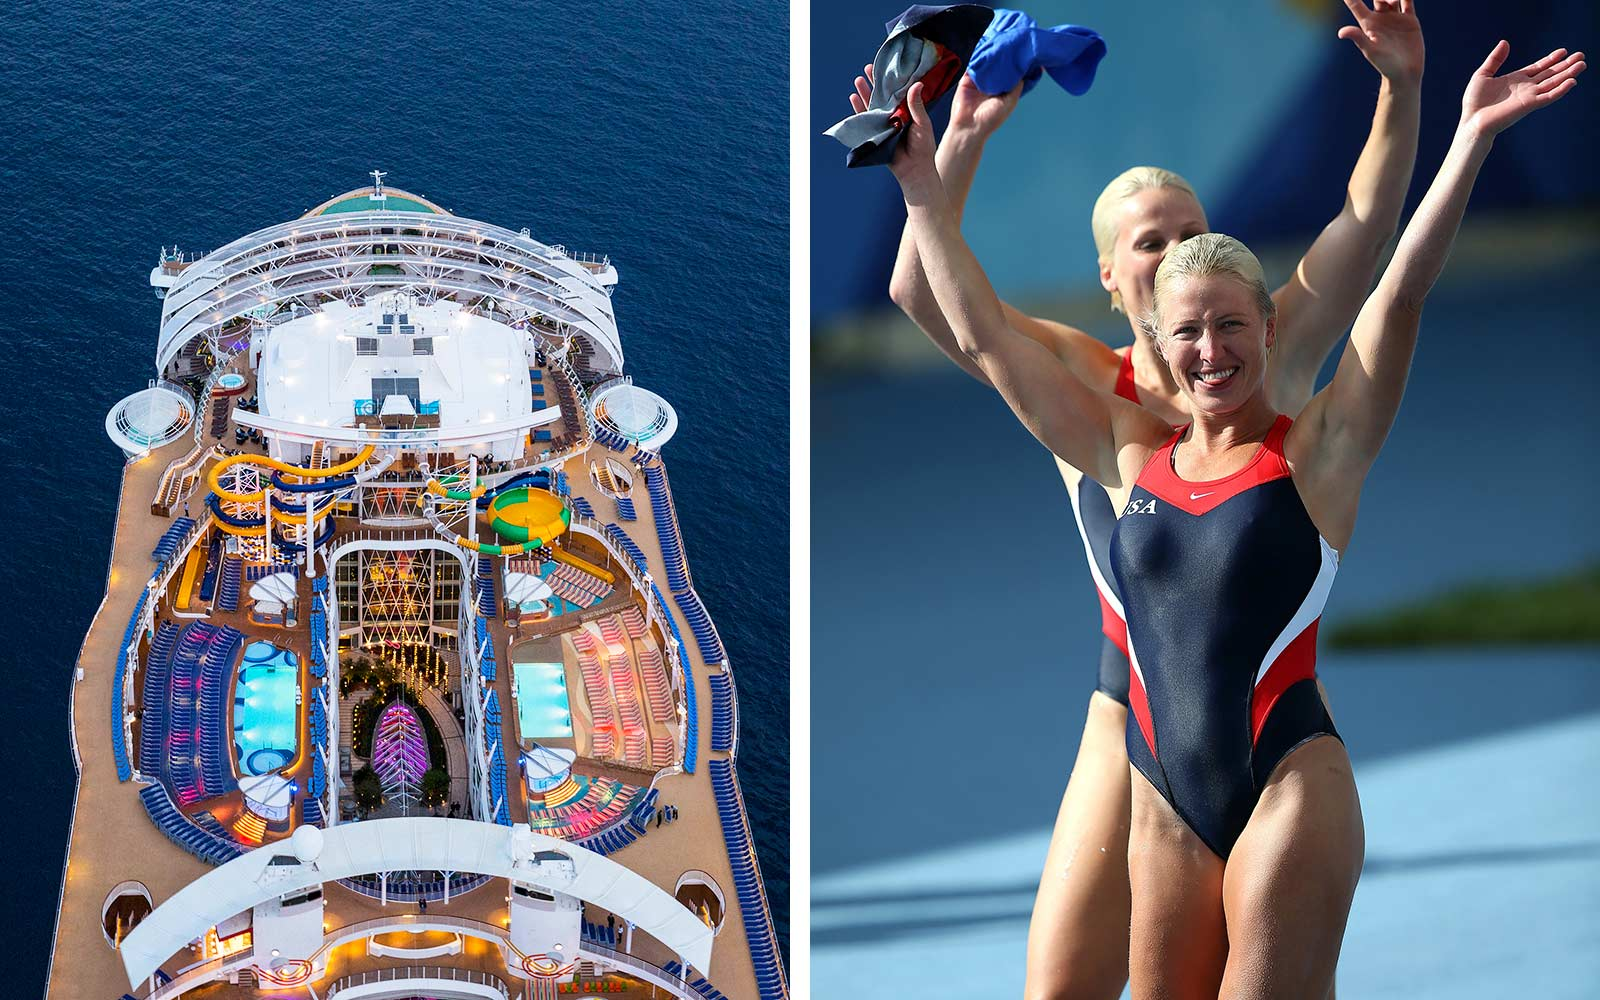 Watch a Woman Make an Insane 55-foot Dive Into the World's Deepest Cruise Ship Pool